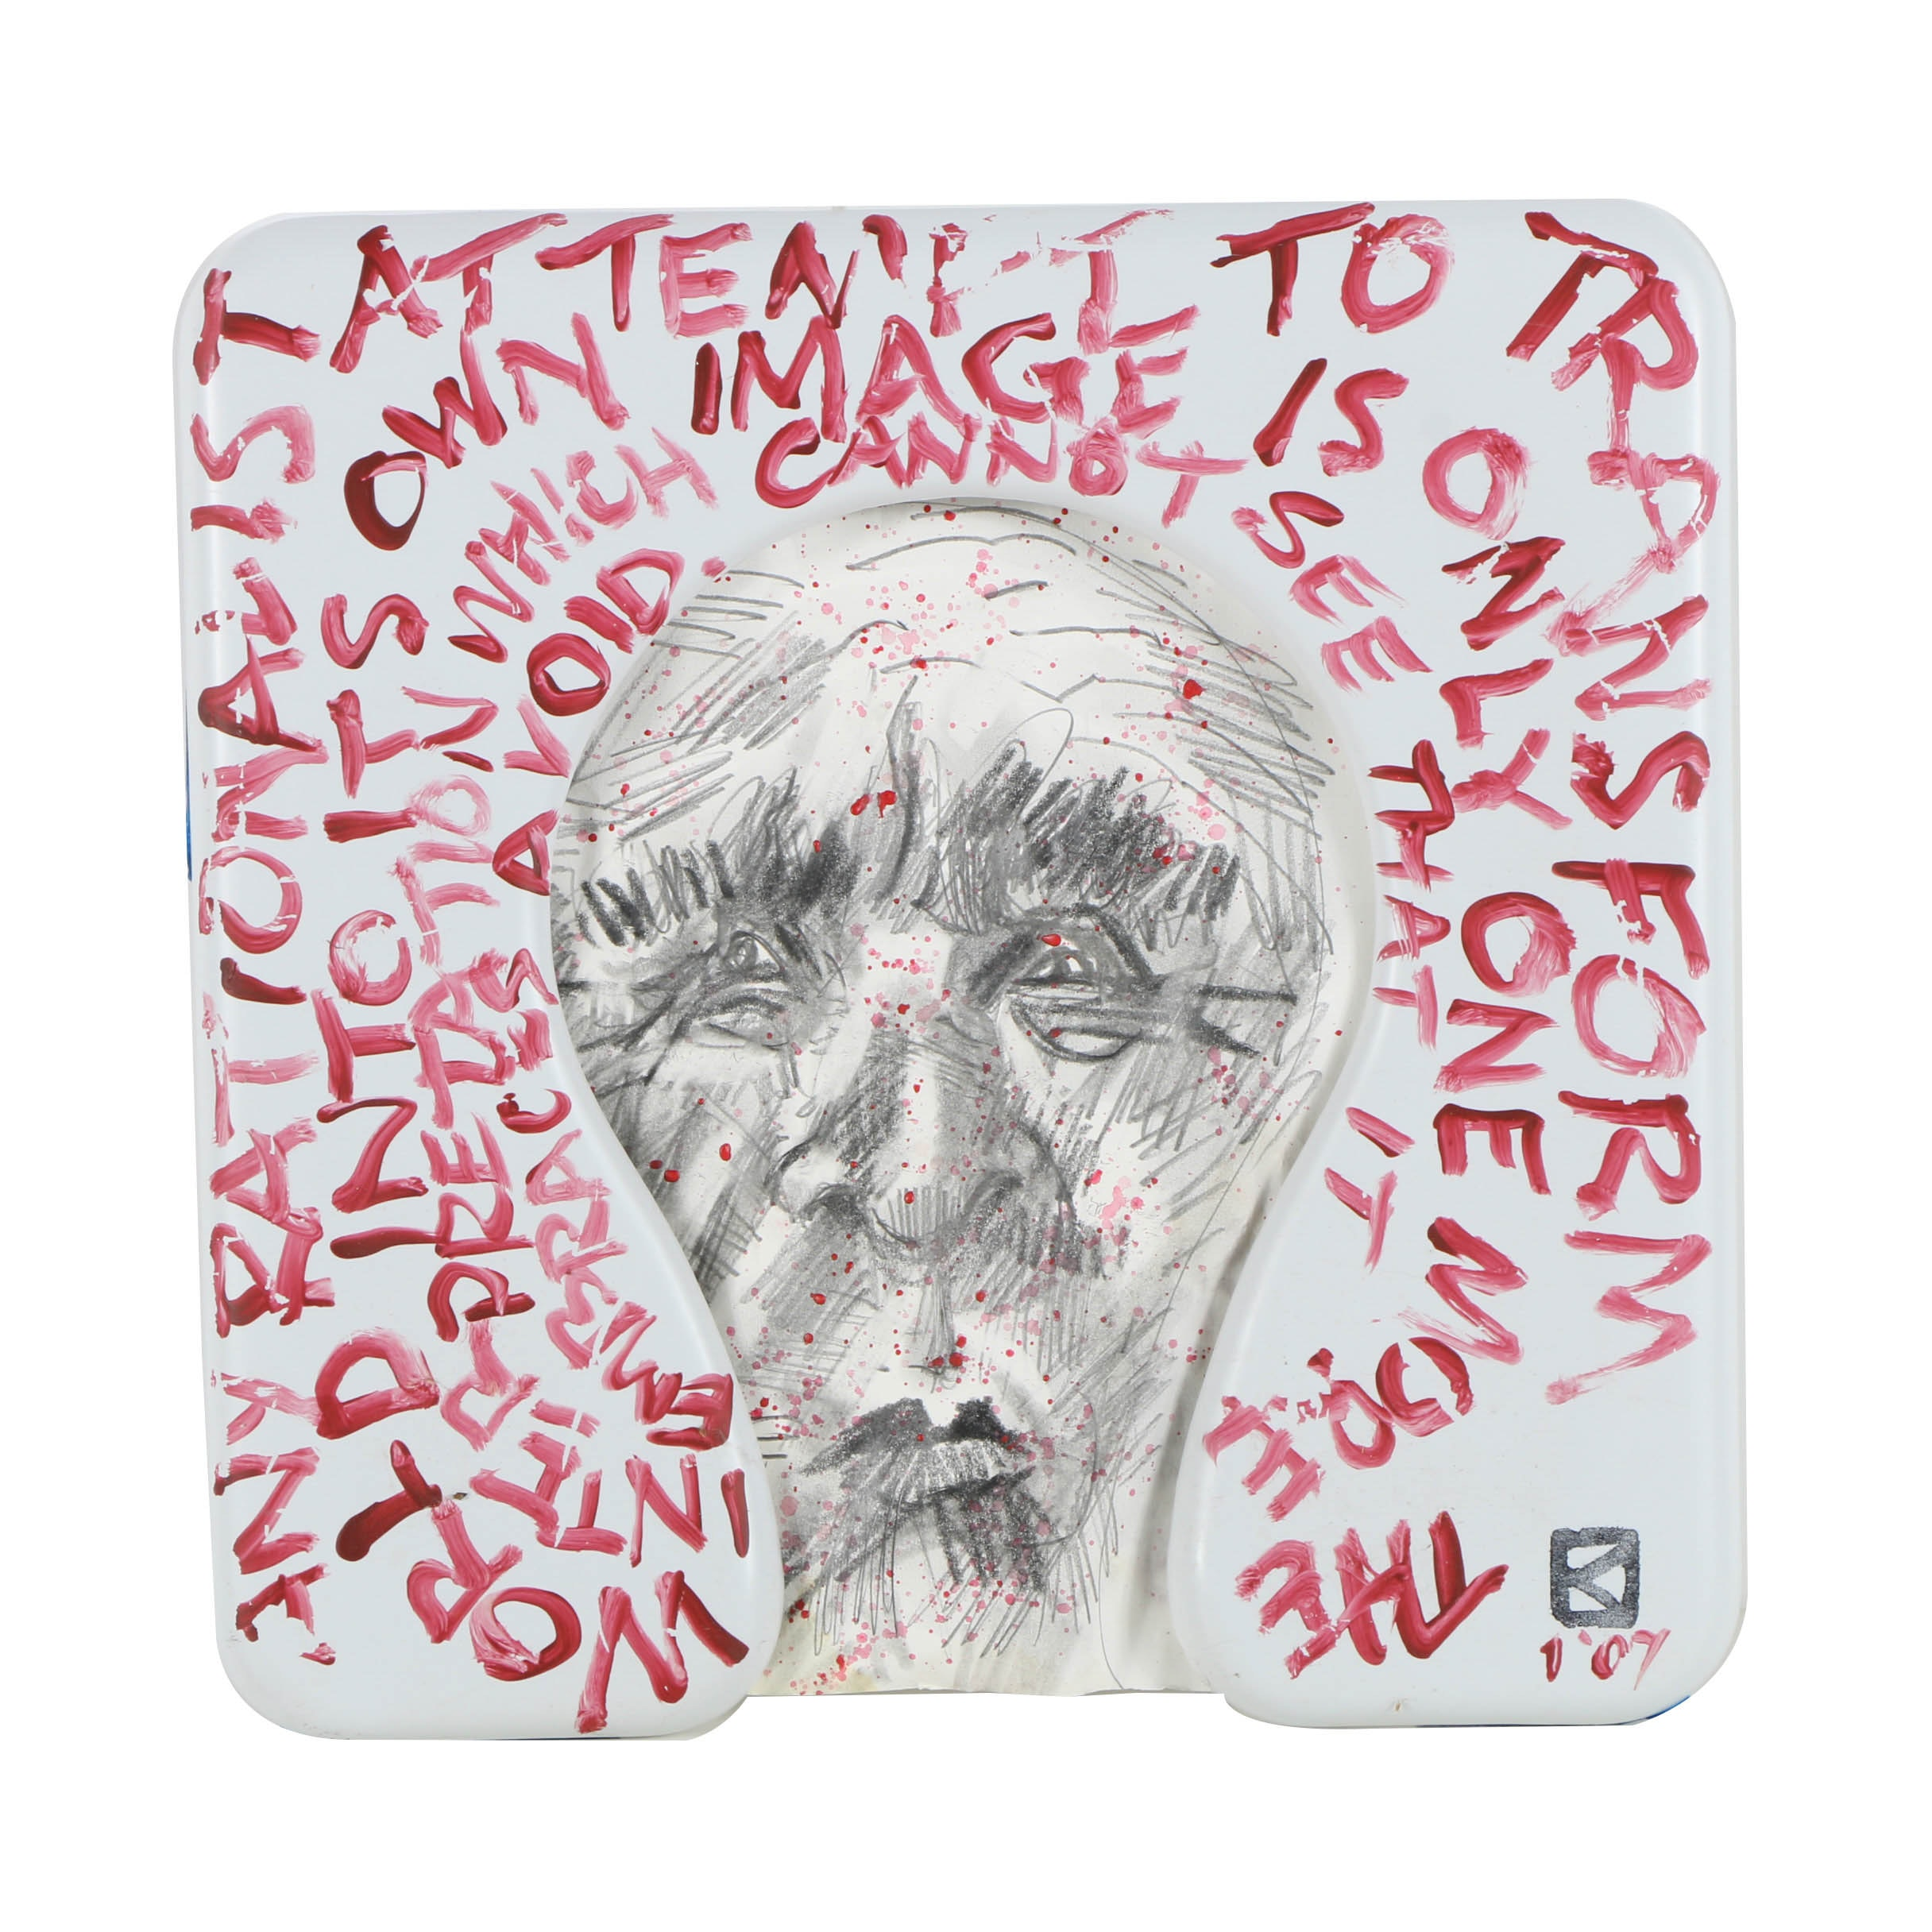 Frank Kowing Mixed Media Sculpture Abstract Portrait of a Man